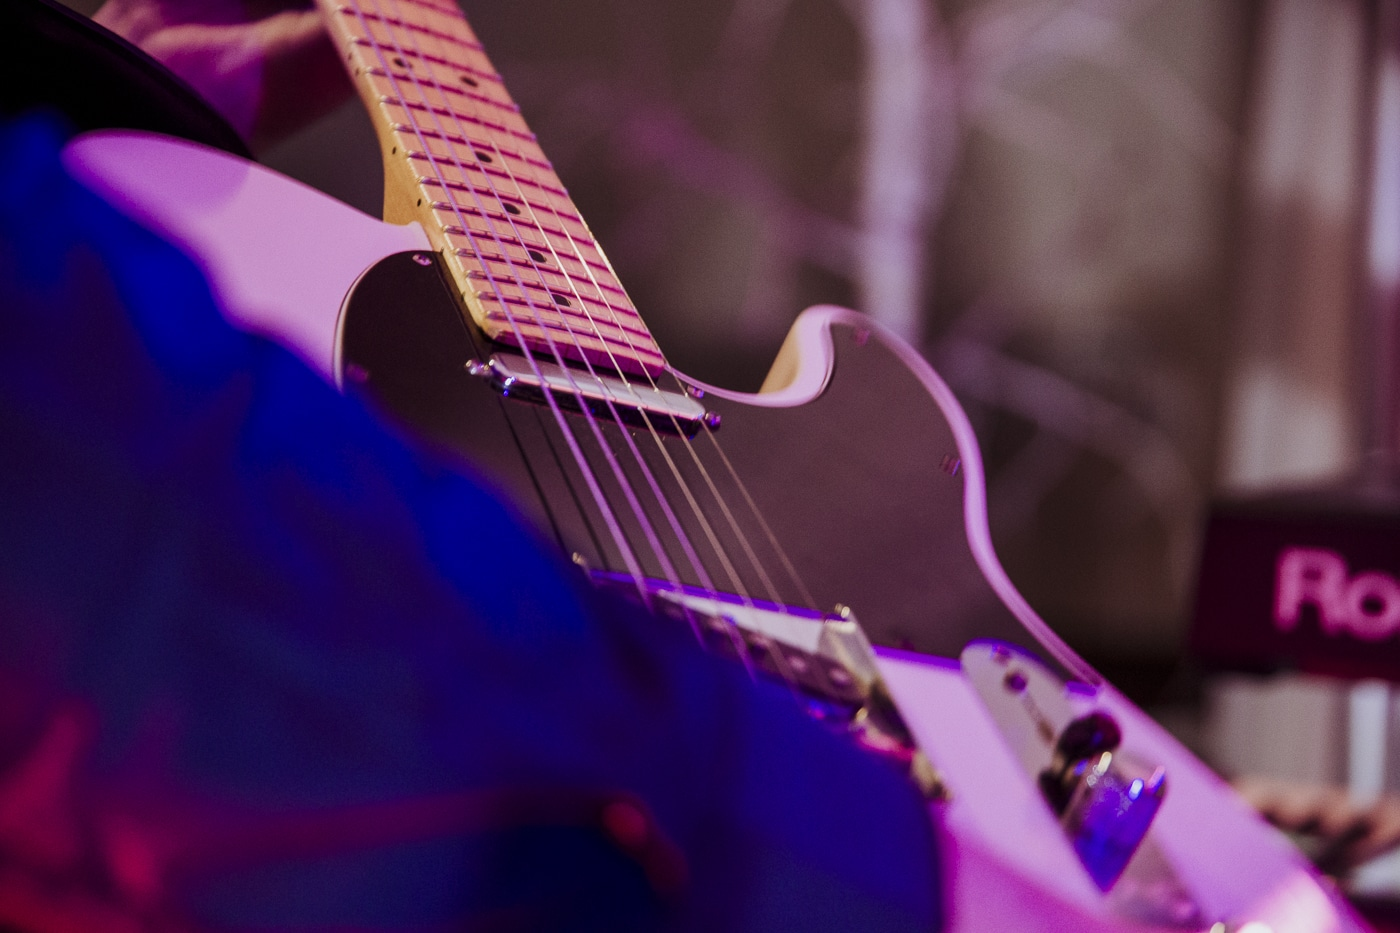 Highly Strung WEdding band photograph of fender guitar